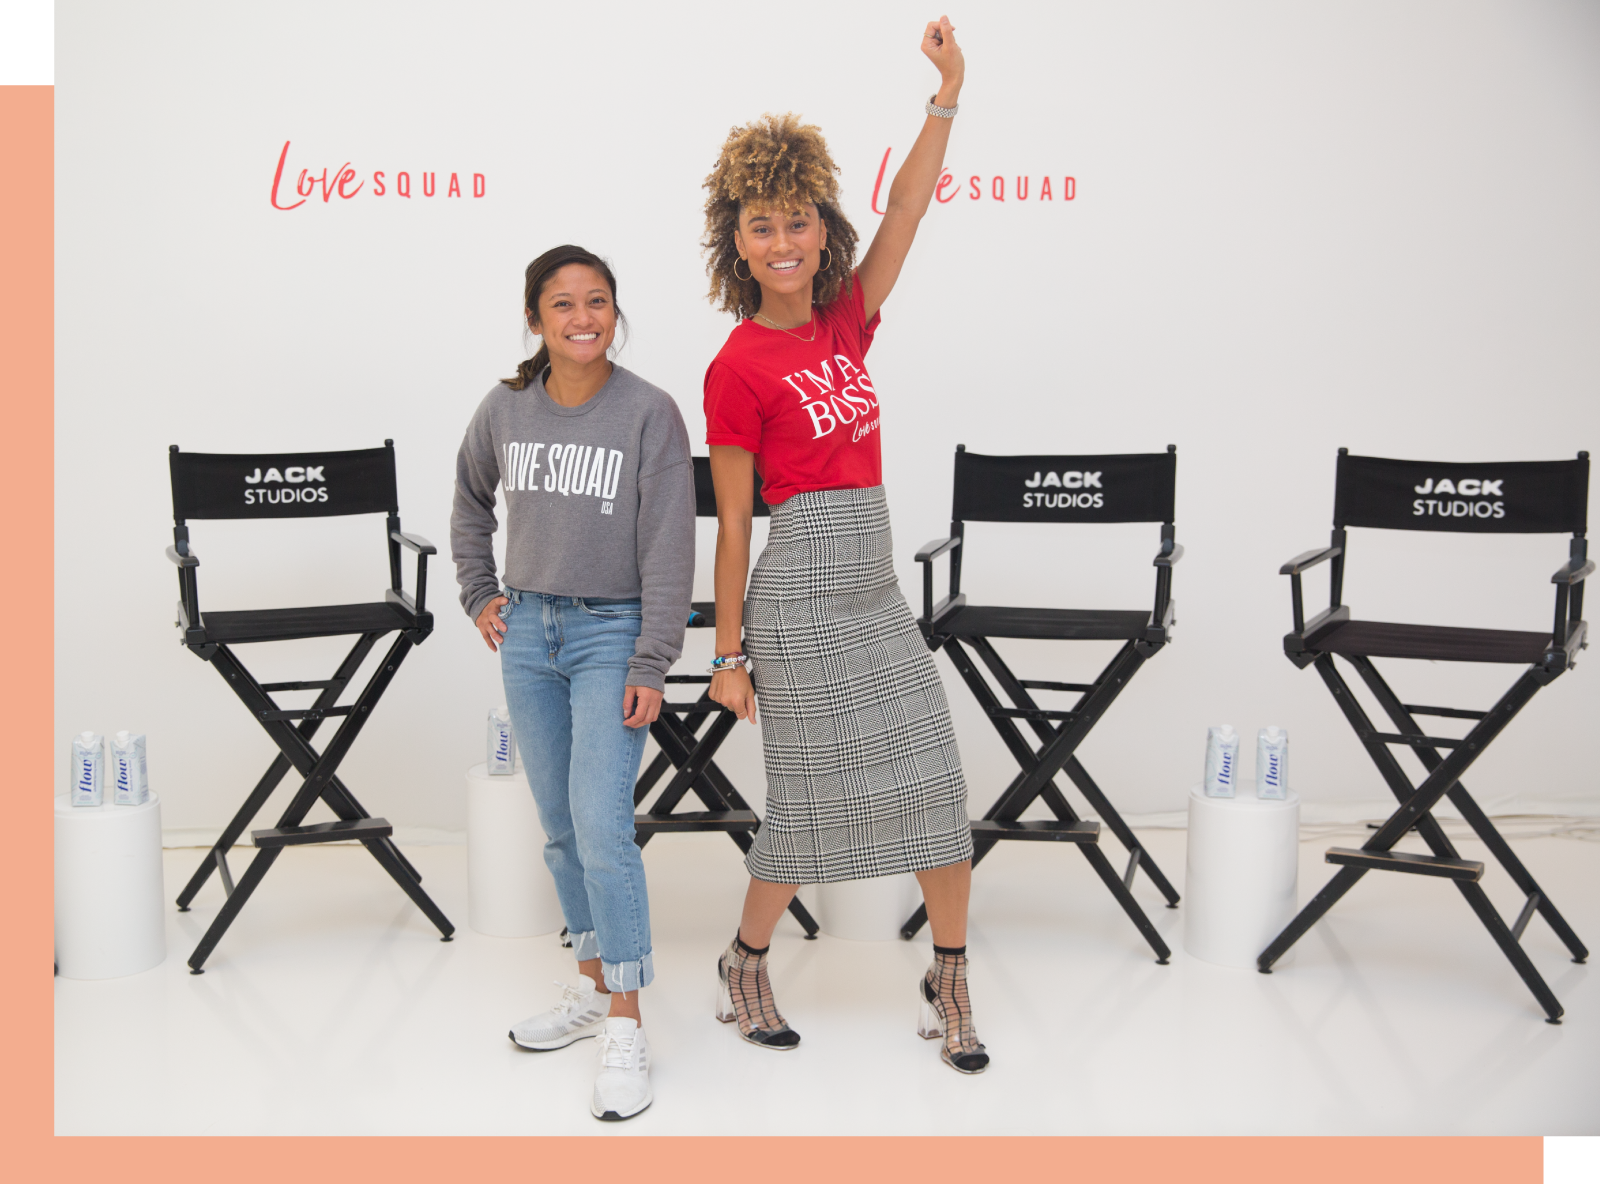 empowering you through conversations that educate and motivate. - Love Squad is an inclusive community using empowerment to champion diversity and inform through panel discussions and experiences to motivate our community to lead healthy lives and unleash their power.